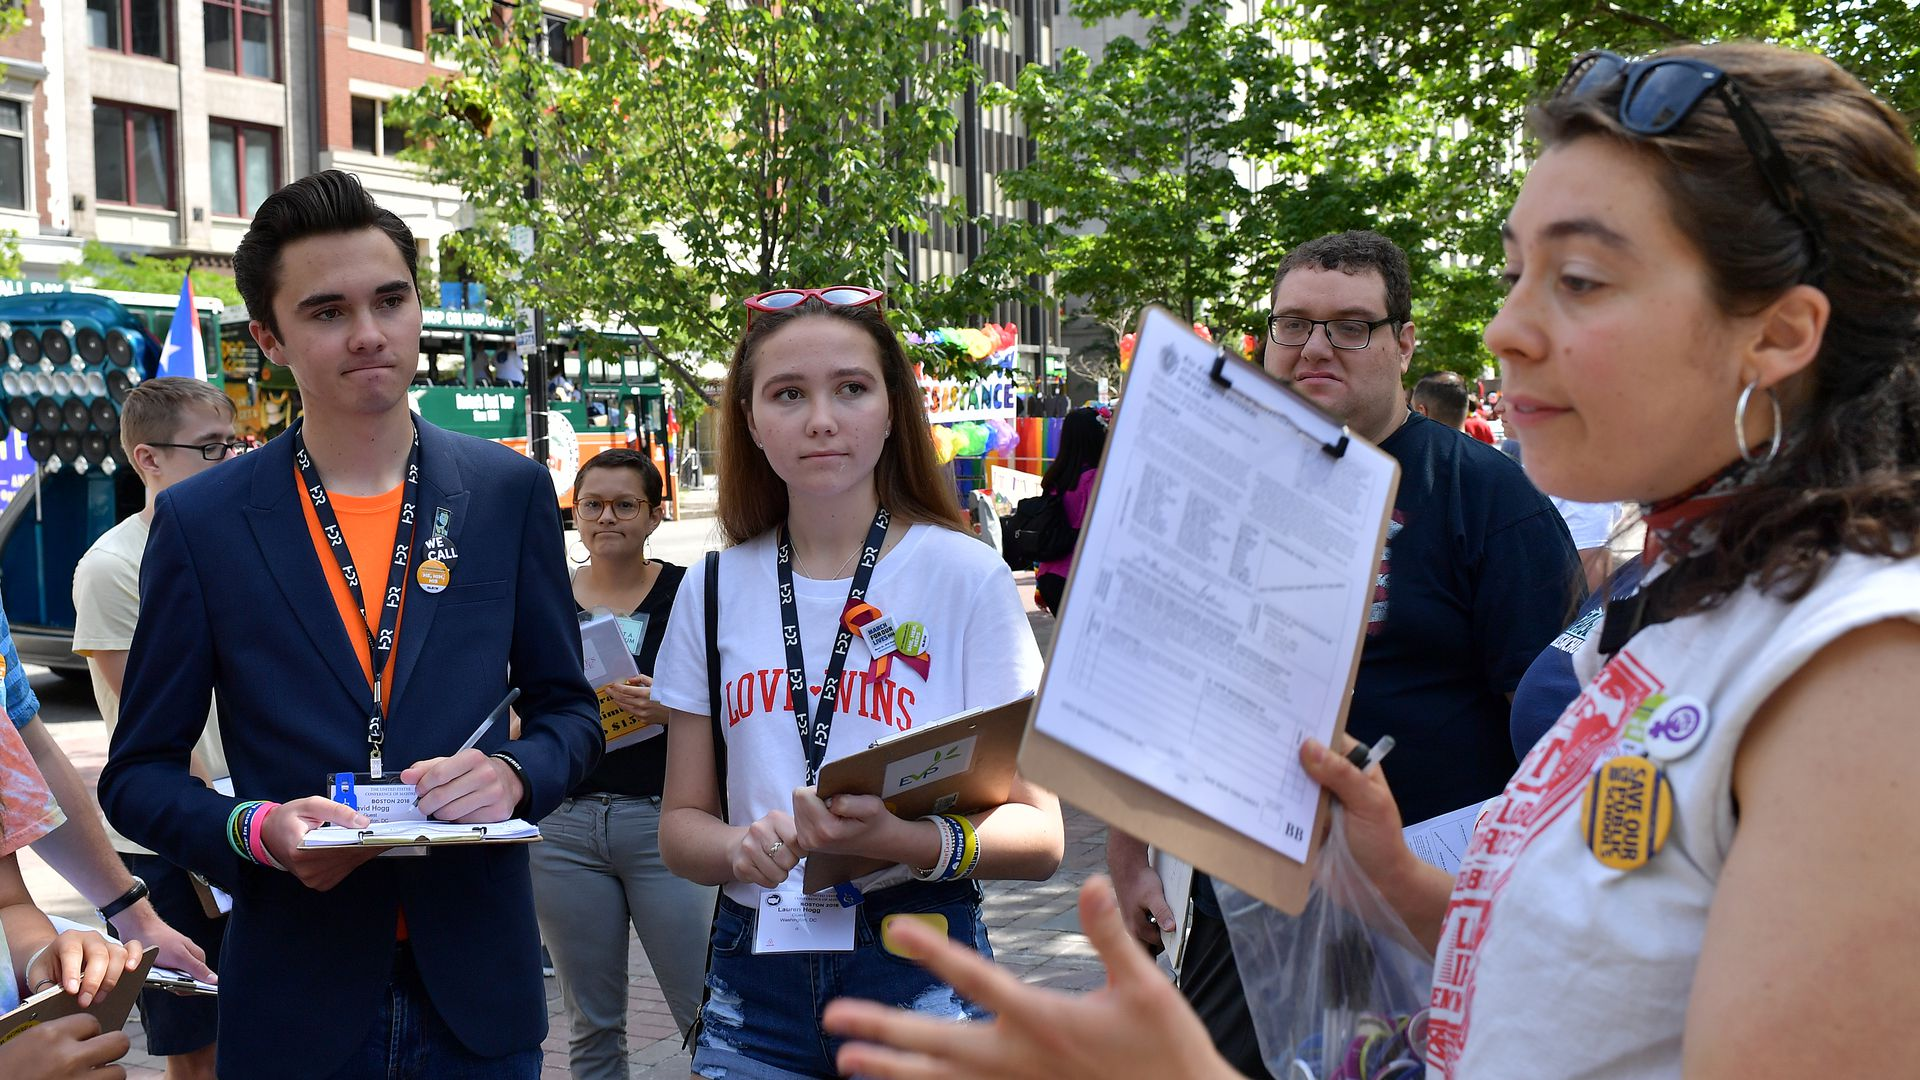 Activists getting signatures for a ballot initiative in Boston